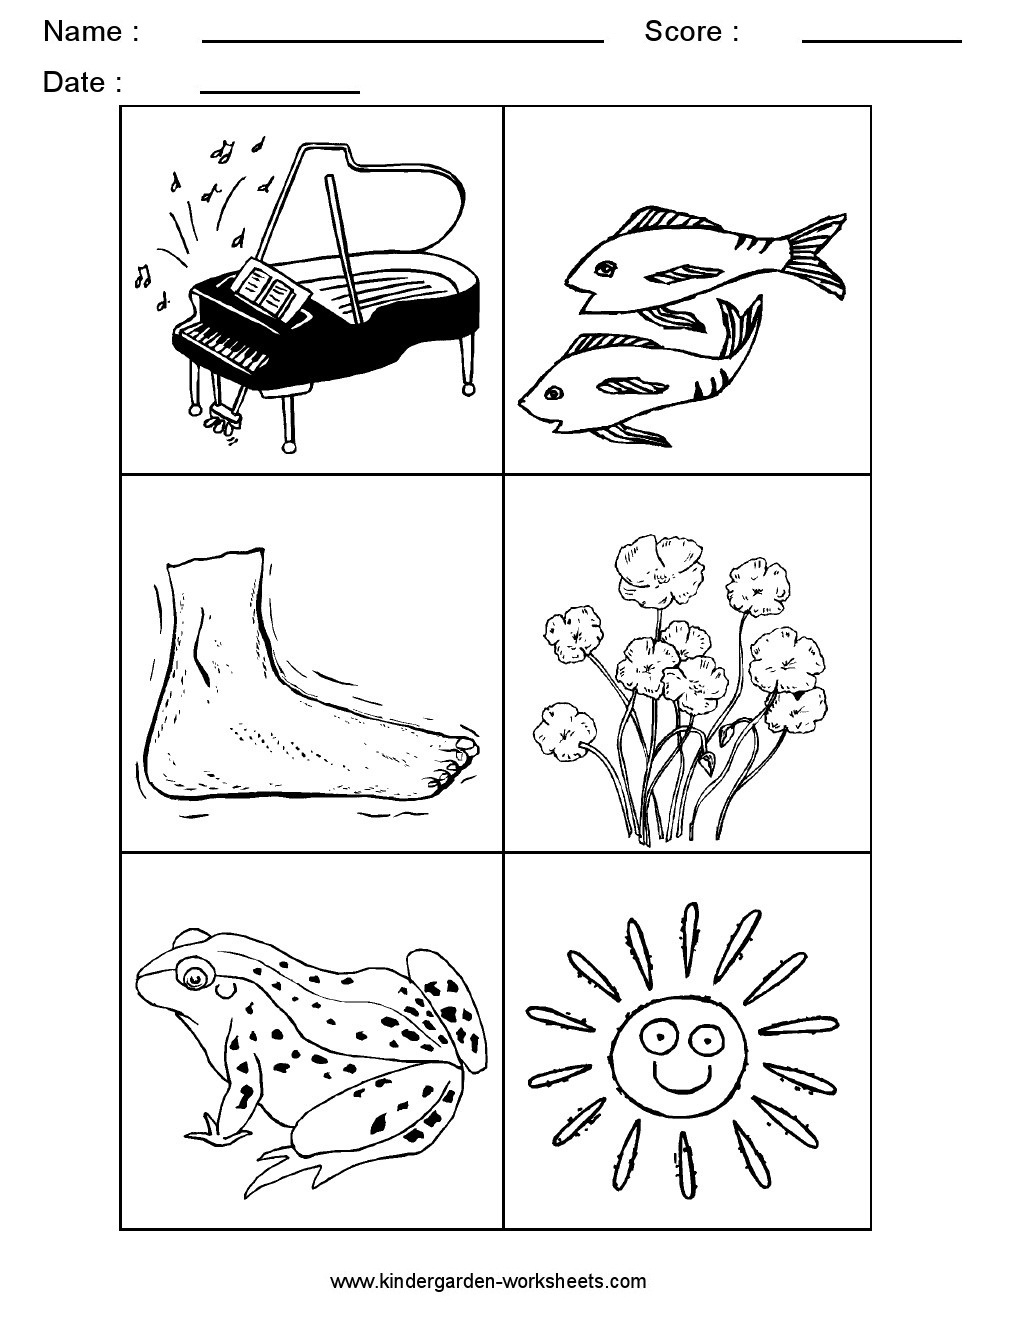 Kindergarten Worksheets: Alphabet Picture Cards - Alphabet Sorting